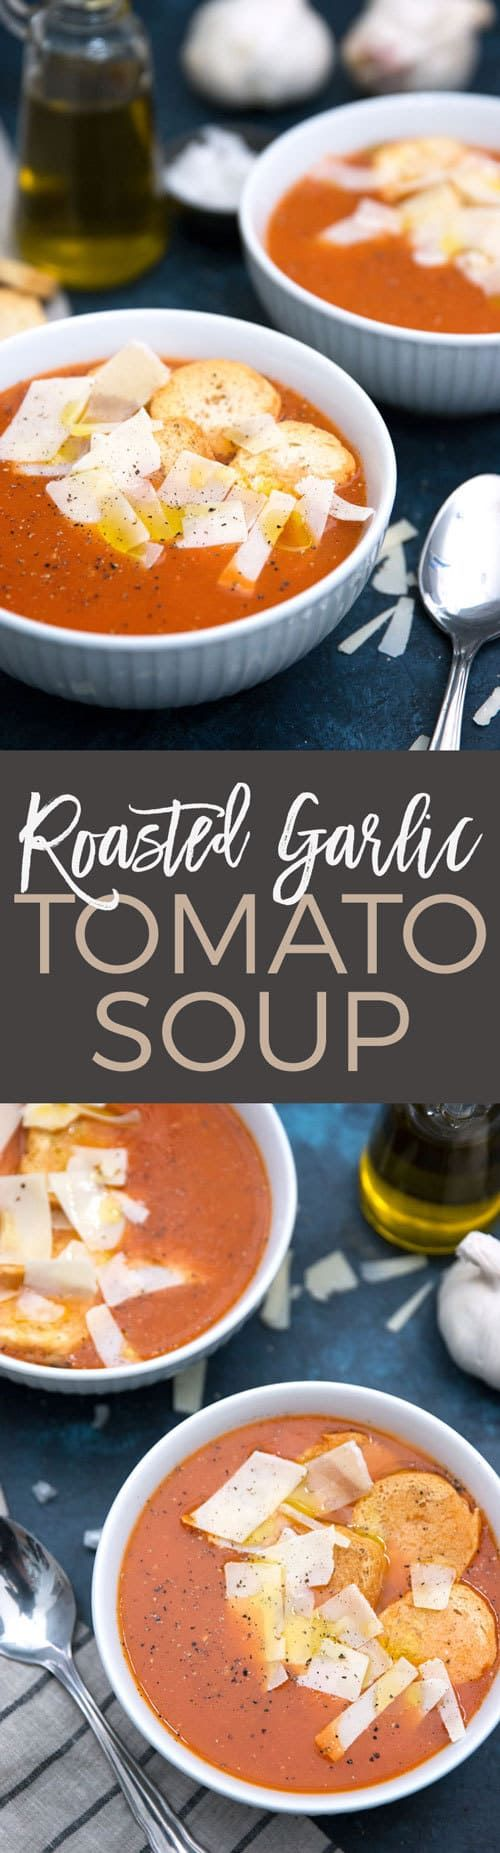 This roasted garlic tomato soup is recipe is easy to make and perfect when paired with a grilled cheese sandwich. This flavorful and aromatic soup is easy to make and is great as lunch! #soup #lunch #tomatosoup #recipe